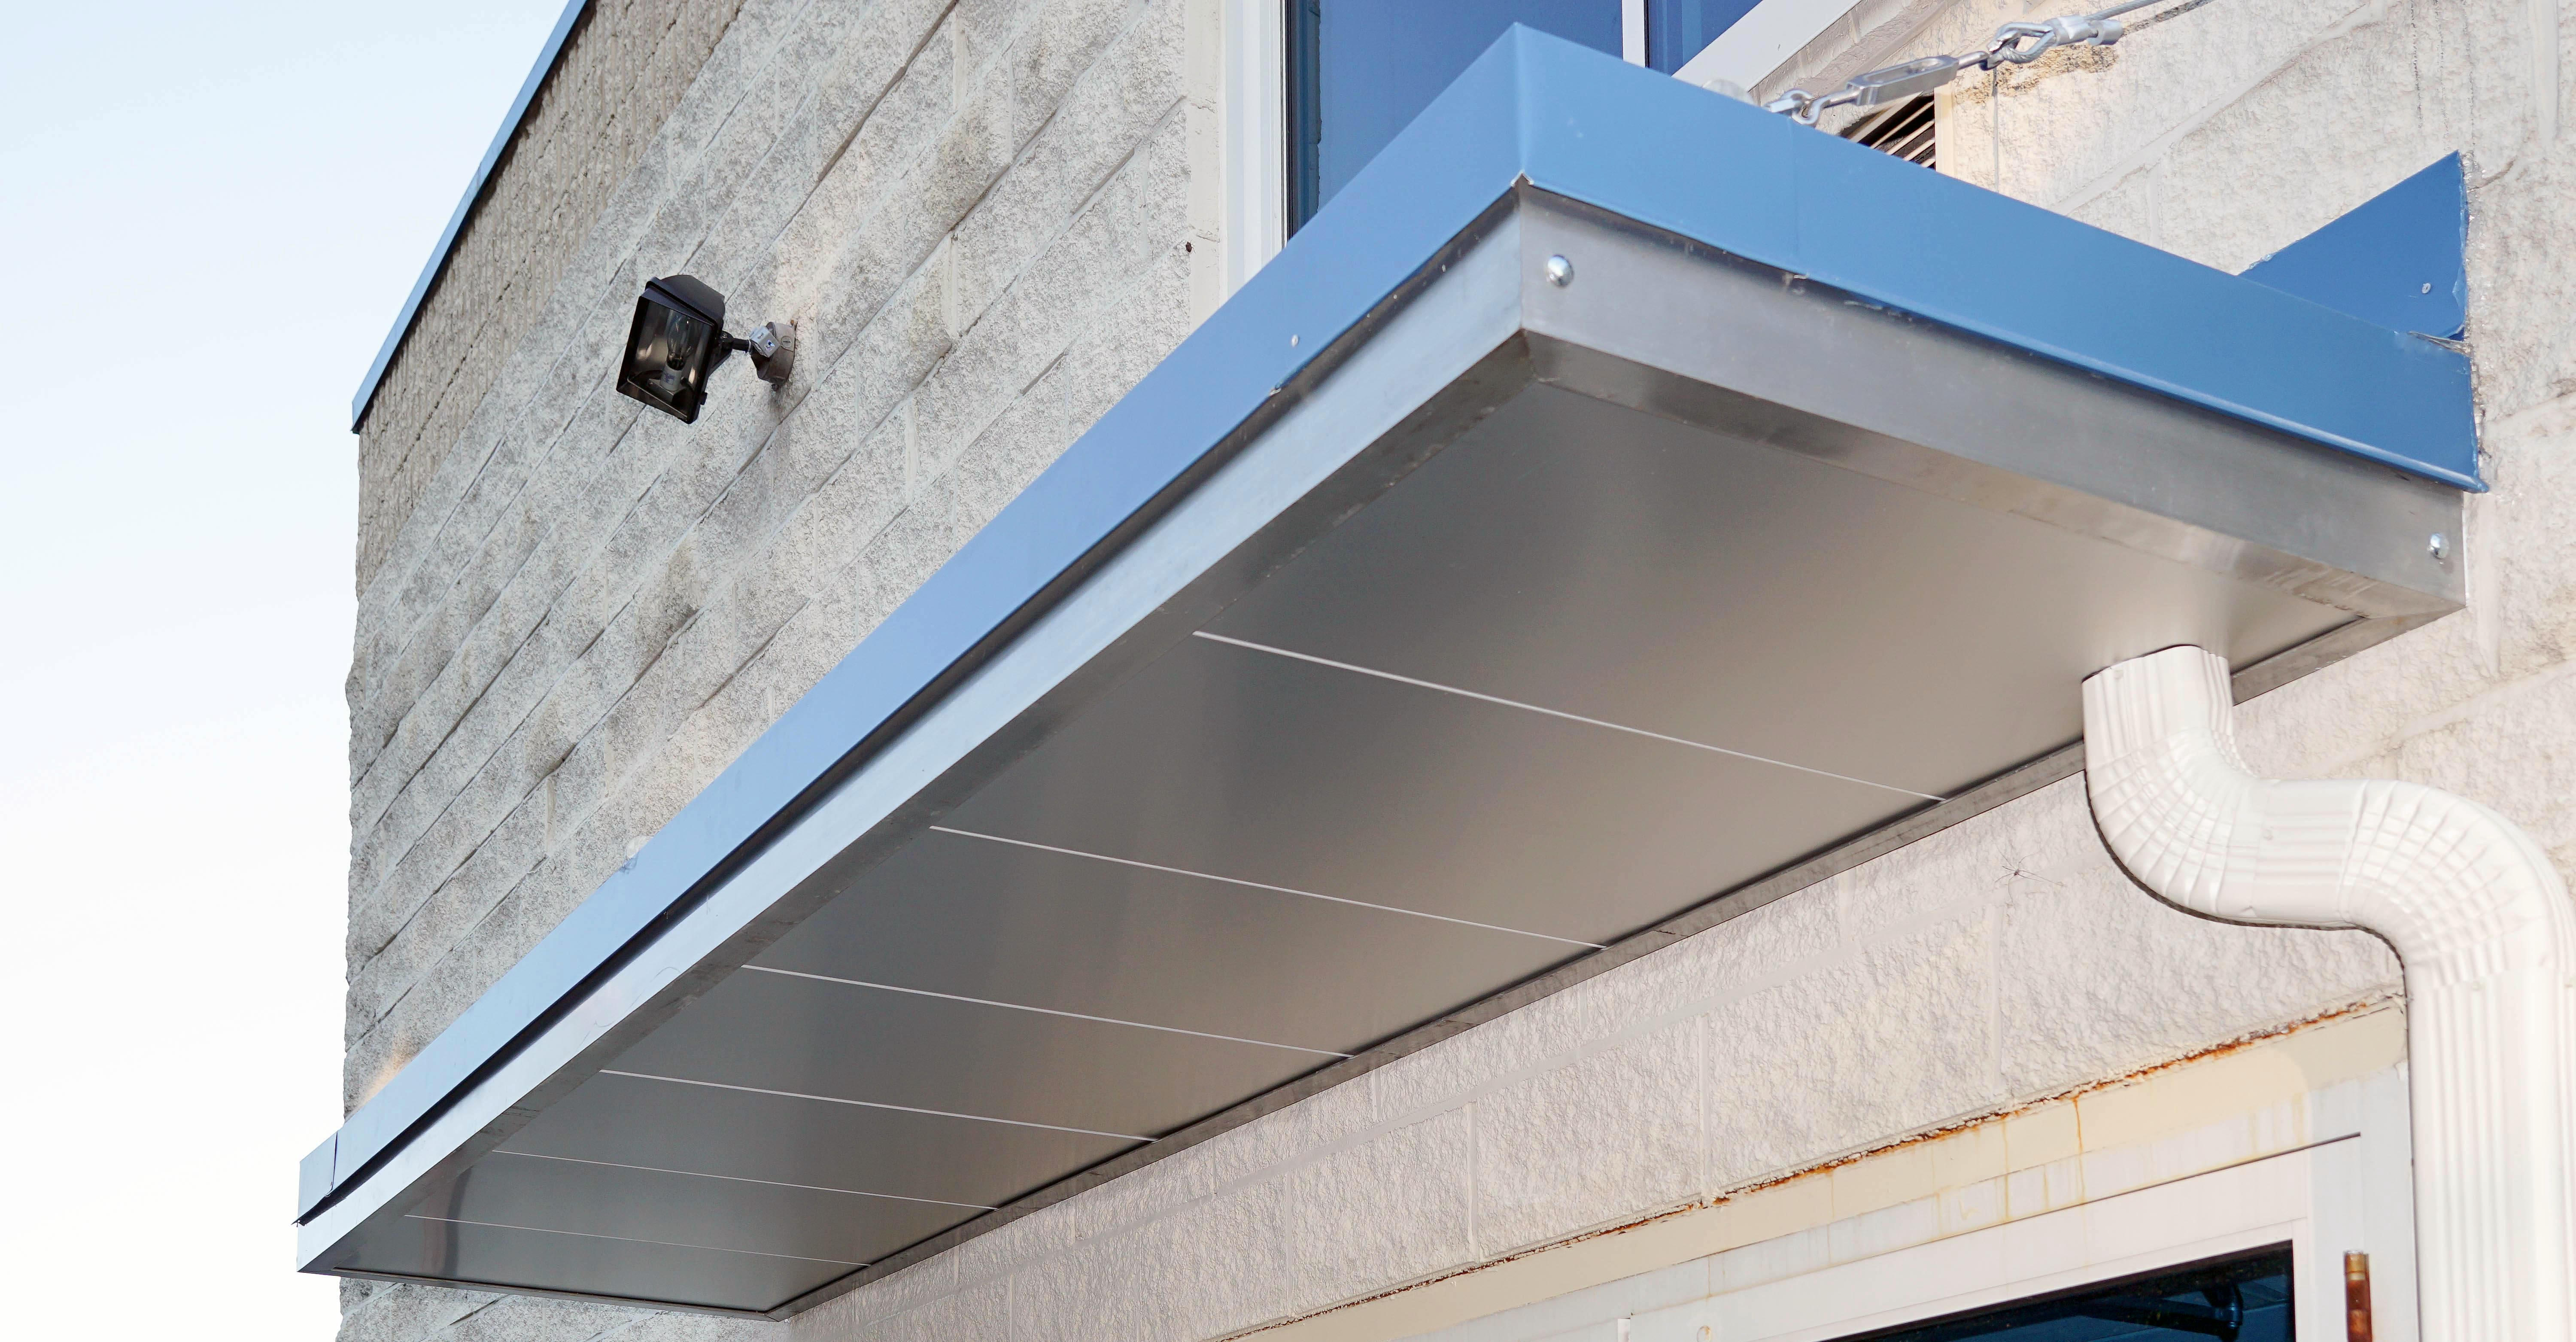 Suspended Metal Canopy with Soffit & Suspended Metal Canopy with Soffit - Bensalem Metal